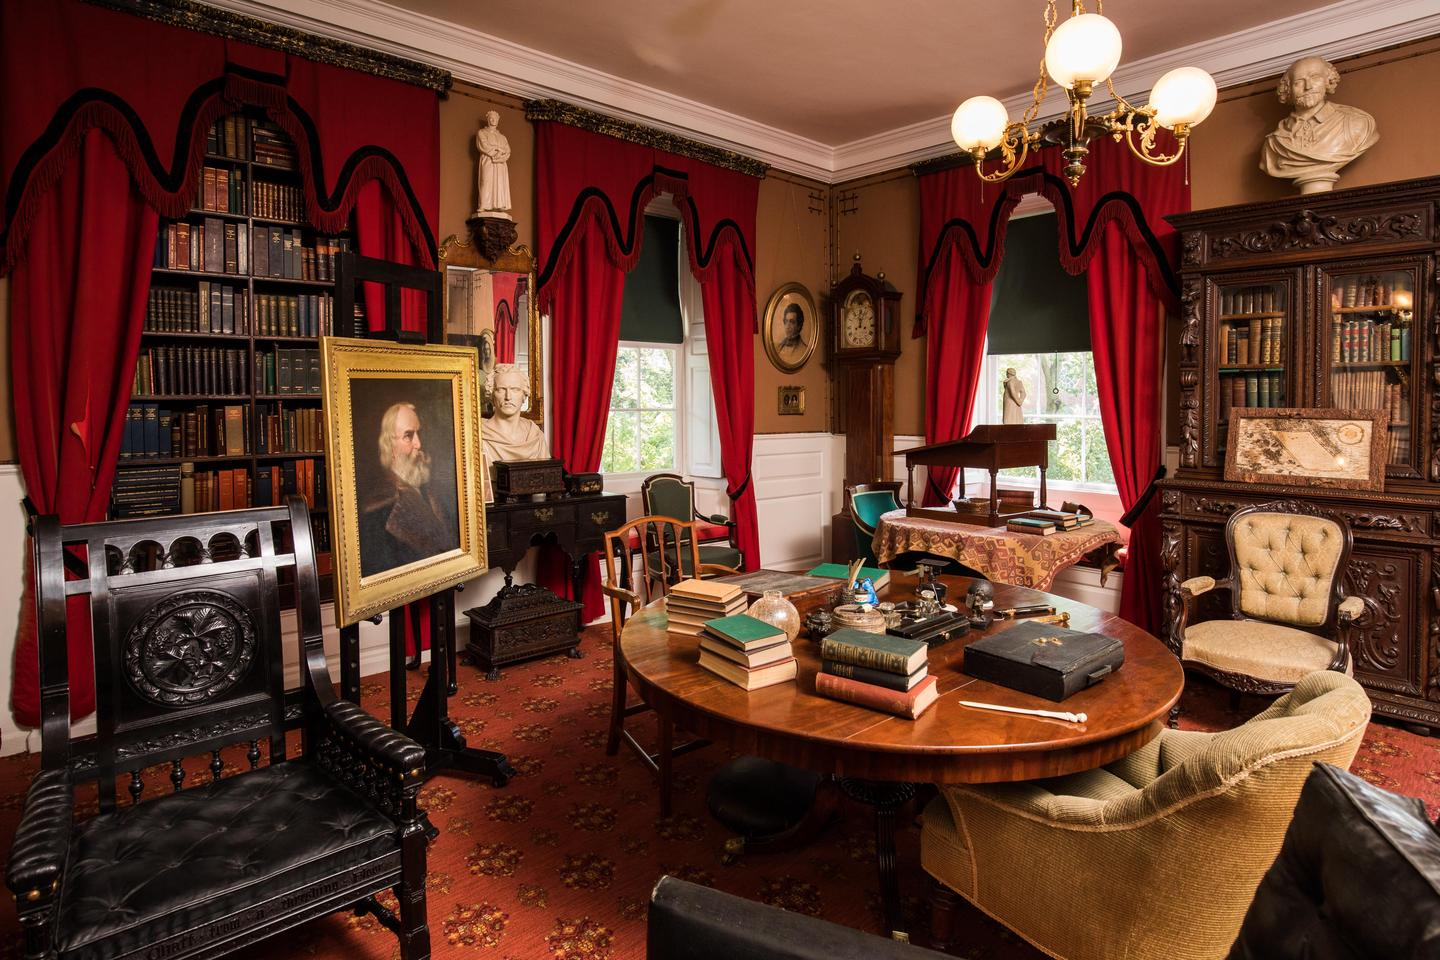 """Henry Wadsworth Longfellow's StudyThe Longfellow study table is cluttered with books and writing implements. The black """"Chestnut Tree Chair"""" was a gift to Henry Longfellow in honor of his poem, """"The Village Blacksmith."""""""